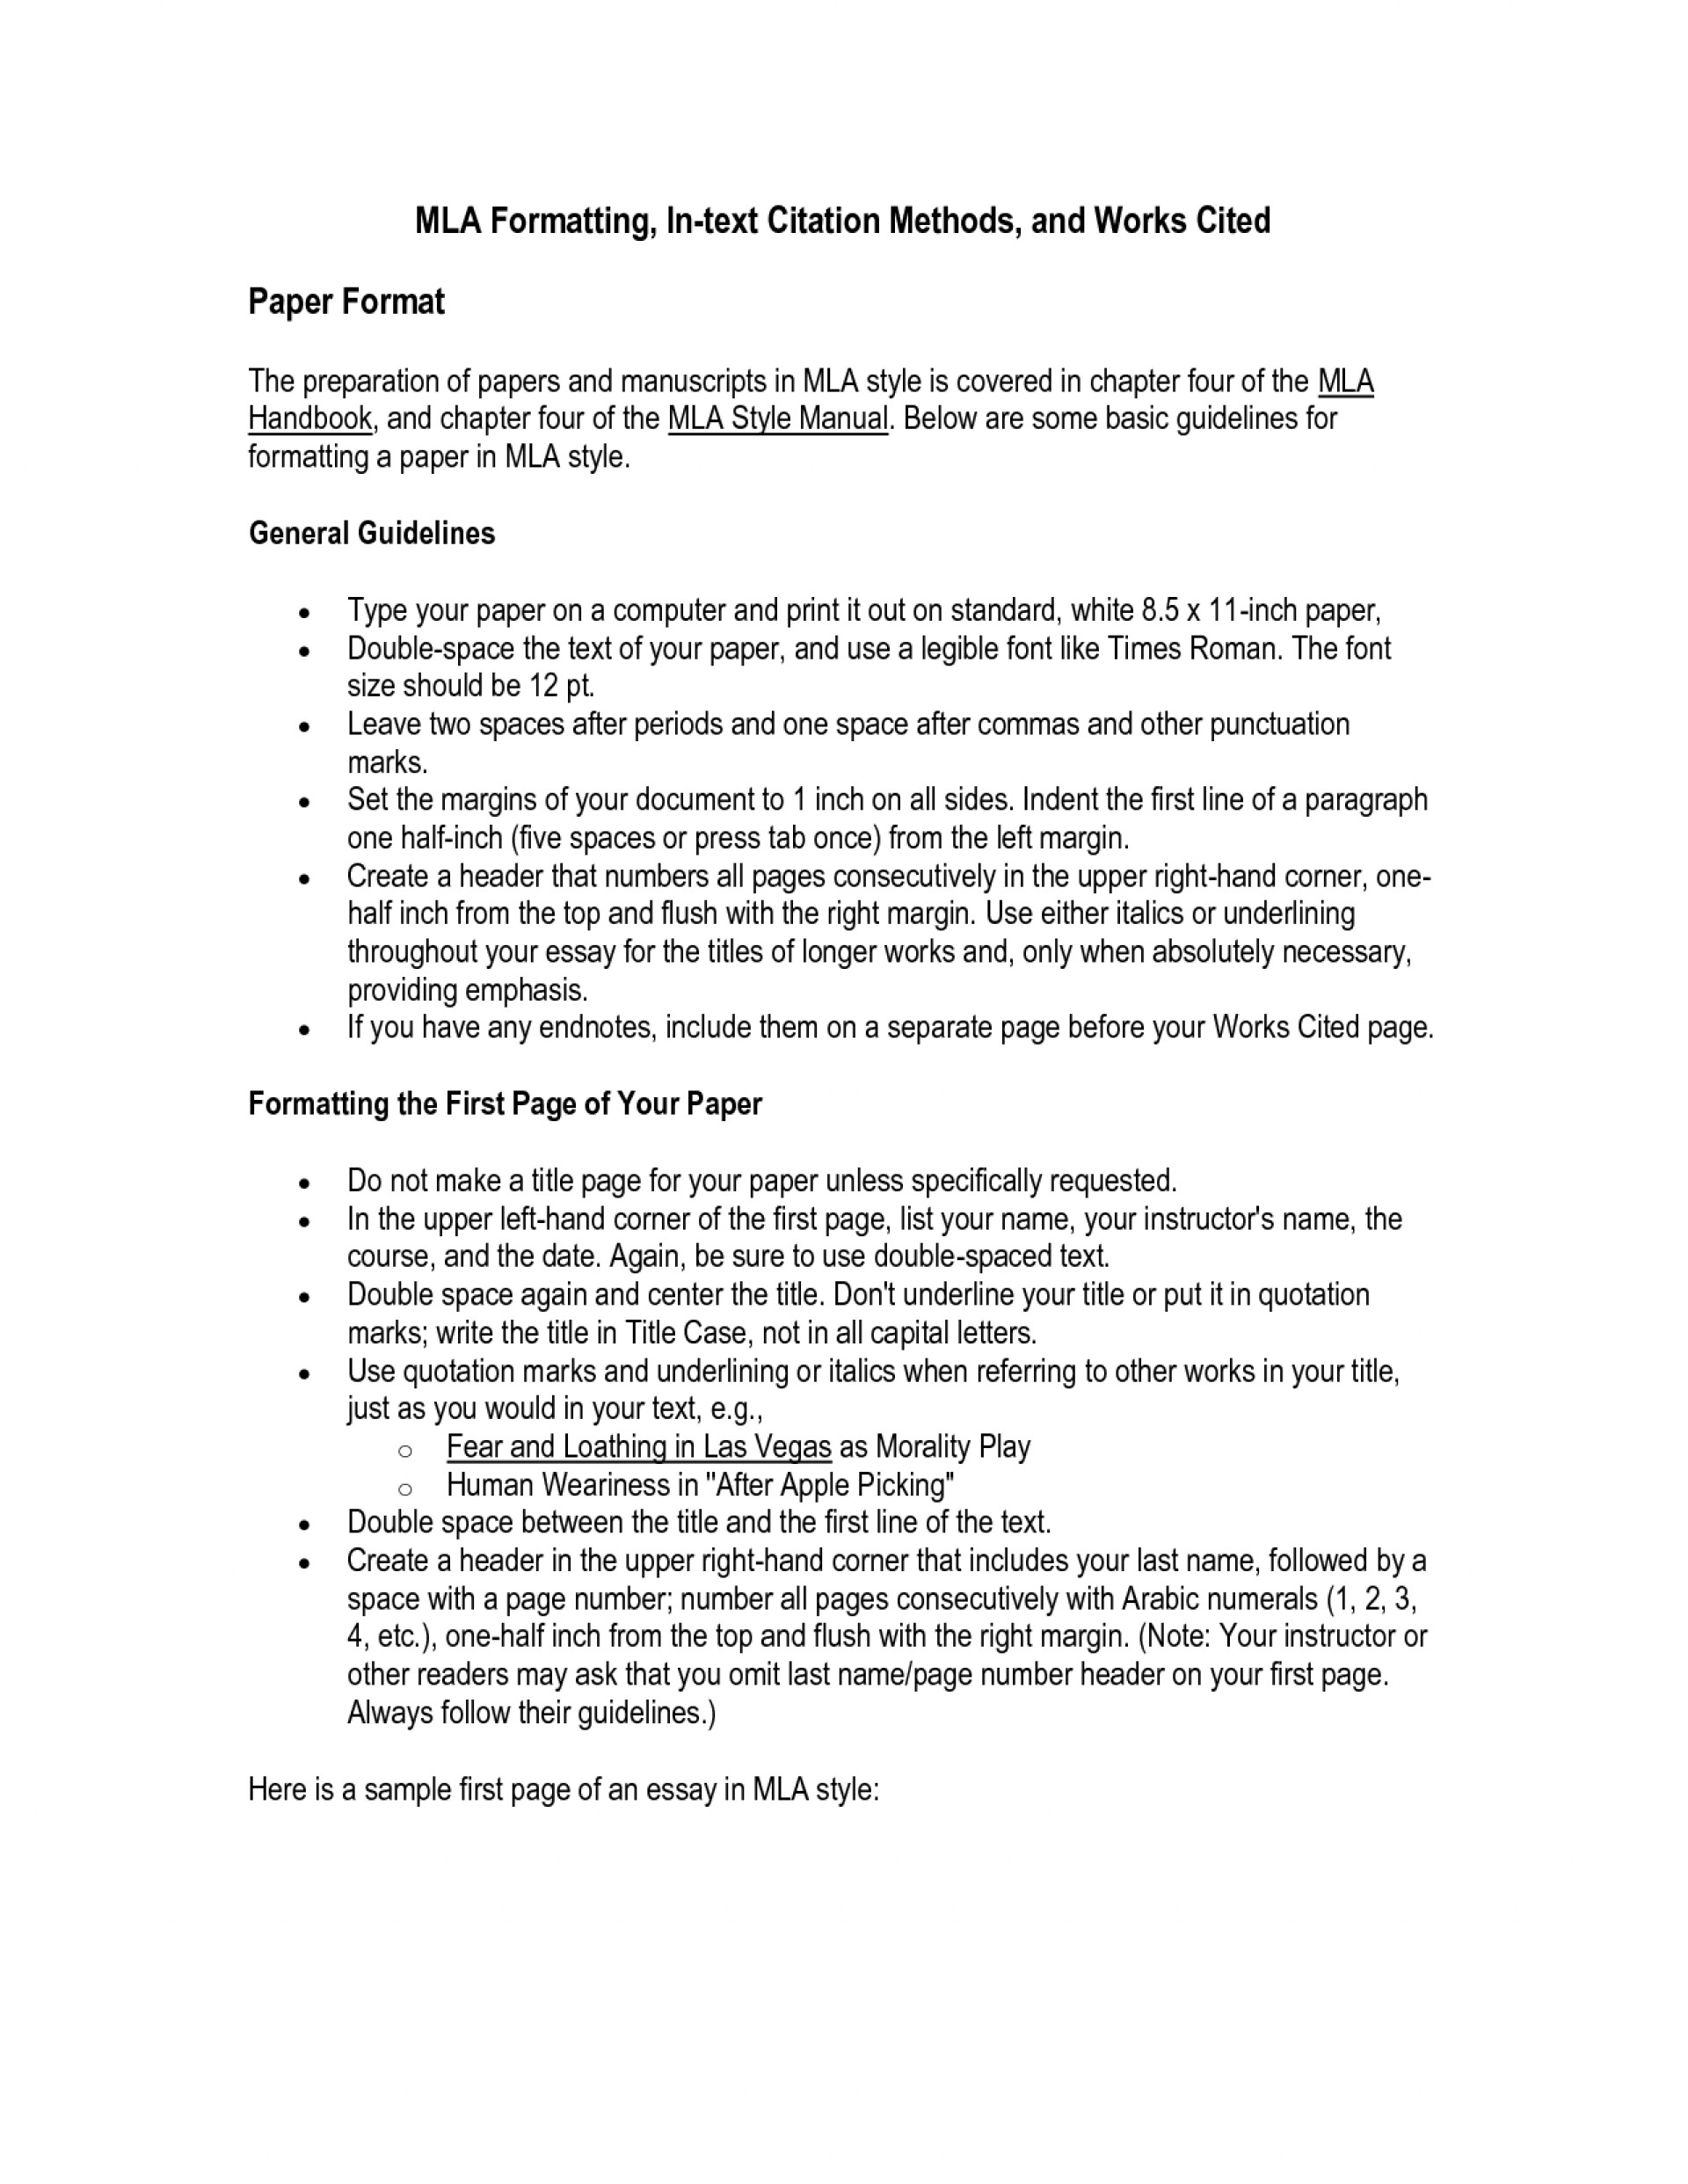 010 How To Cite In An Essay Mla Example Format Works Cited Text 82415 Archaicawful Sources Websites Movies A Paper 1920